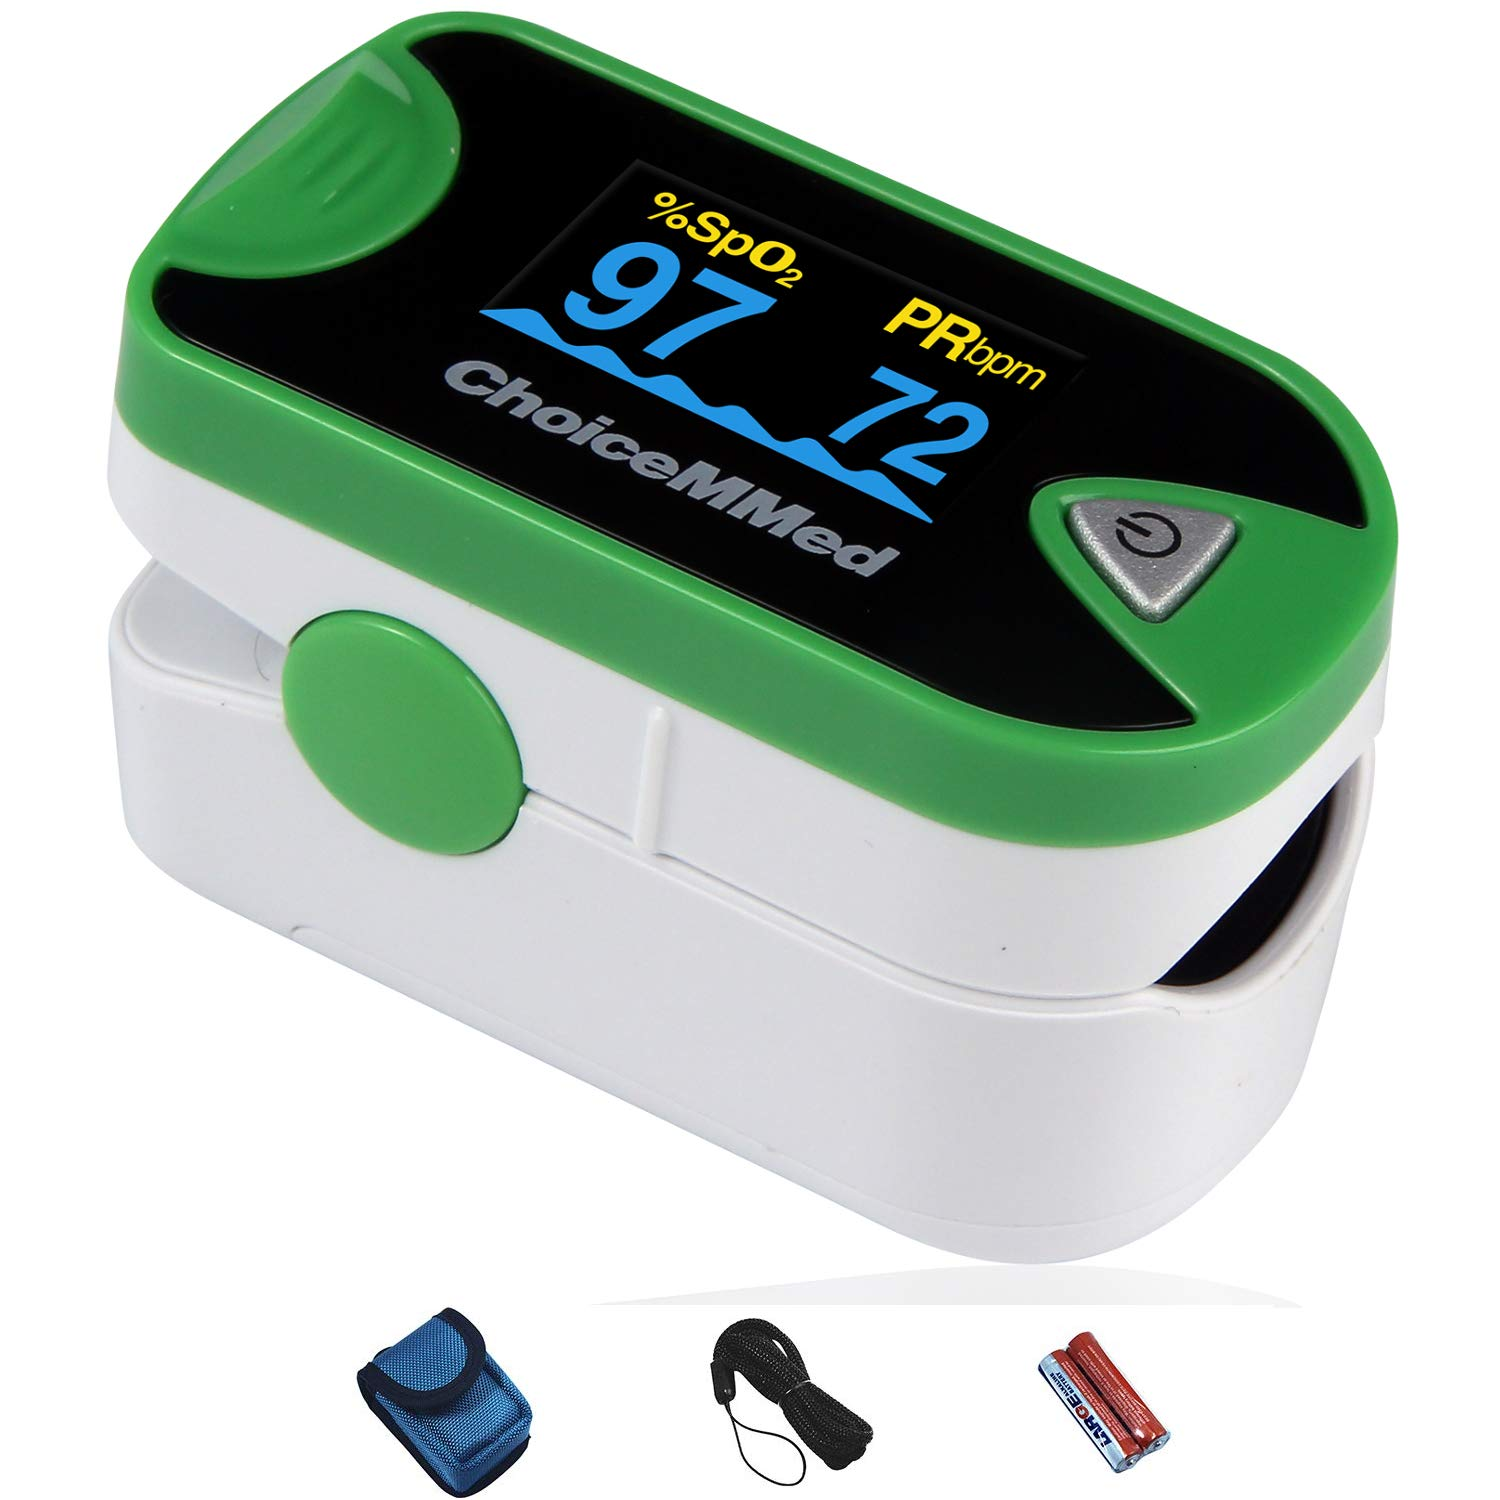 ChoiceMMed Dual Color OLED Finger Pulse Oximeter - Green - Blood Oxygen Saturation Monitor with Color OLED Screen Display and Included Batteries - O2 Saturation Monitor